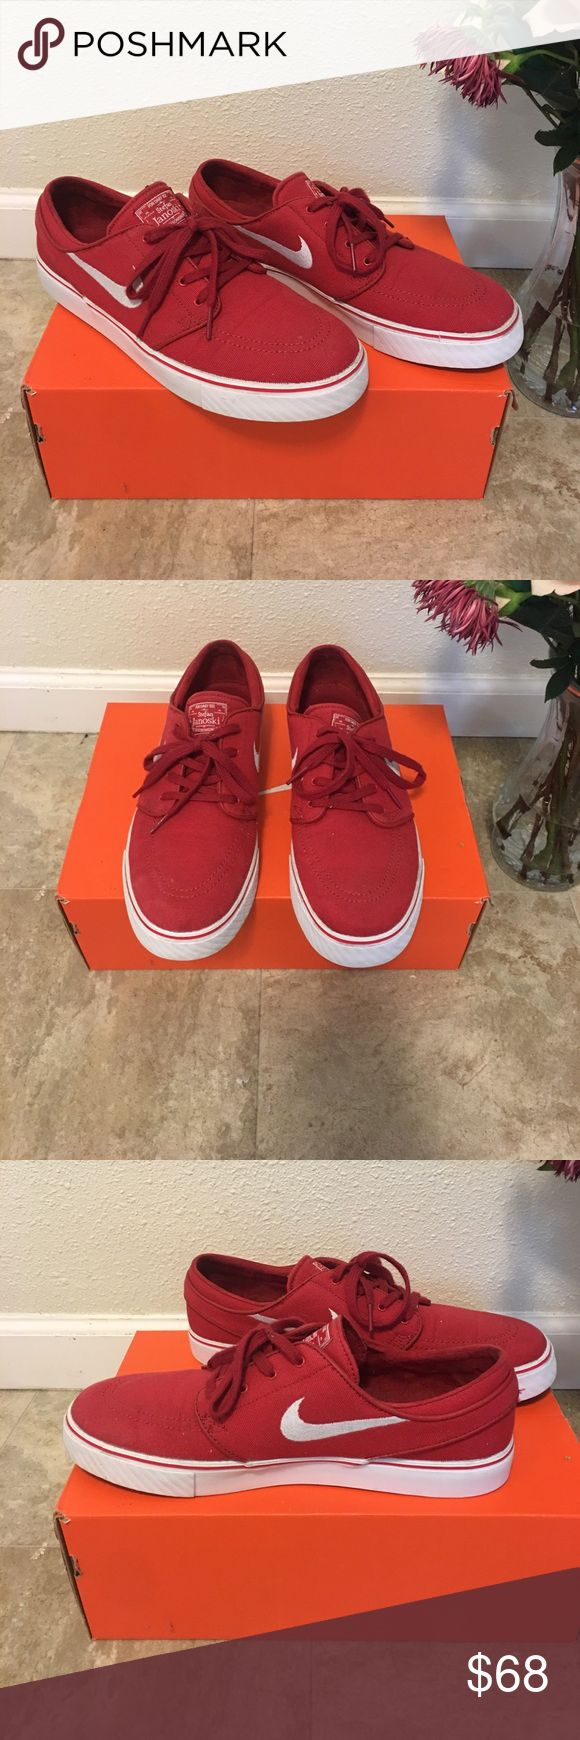 Red Nikes! Stefan Janoski's! Worn only a few times Red Nikes. Stefan Janoski's Nike skateboarding company line! Only worn a few times, otherwise just sitting in a shelf! Men's size 10.5. Nike Shoes Sneakers